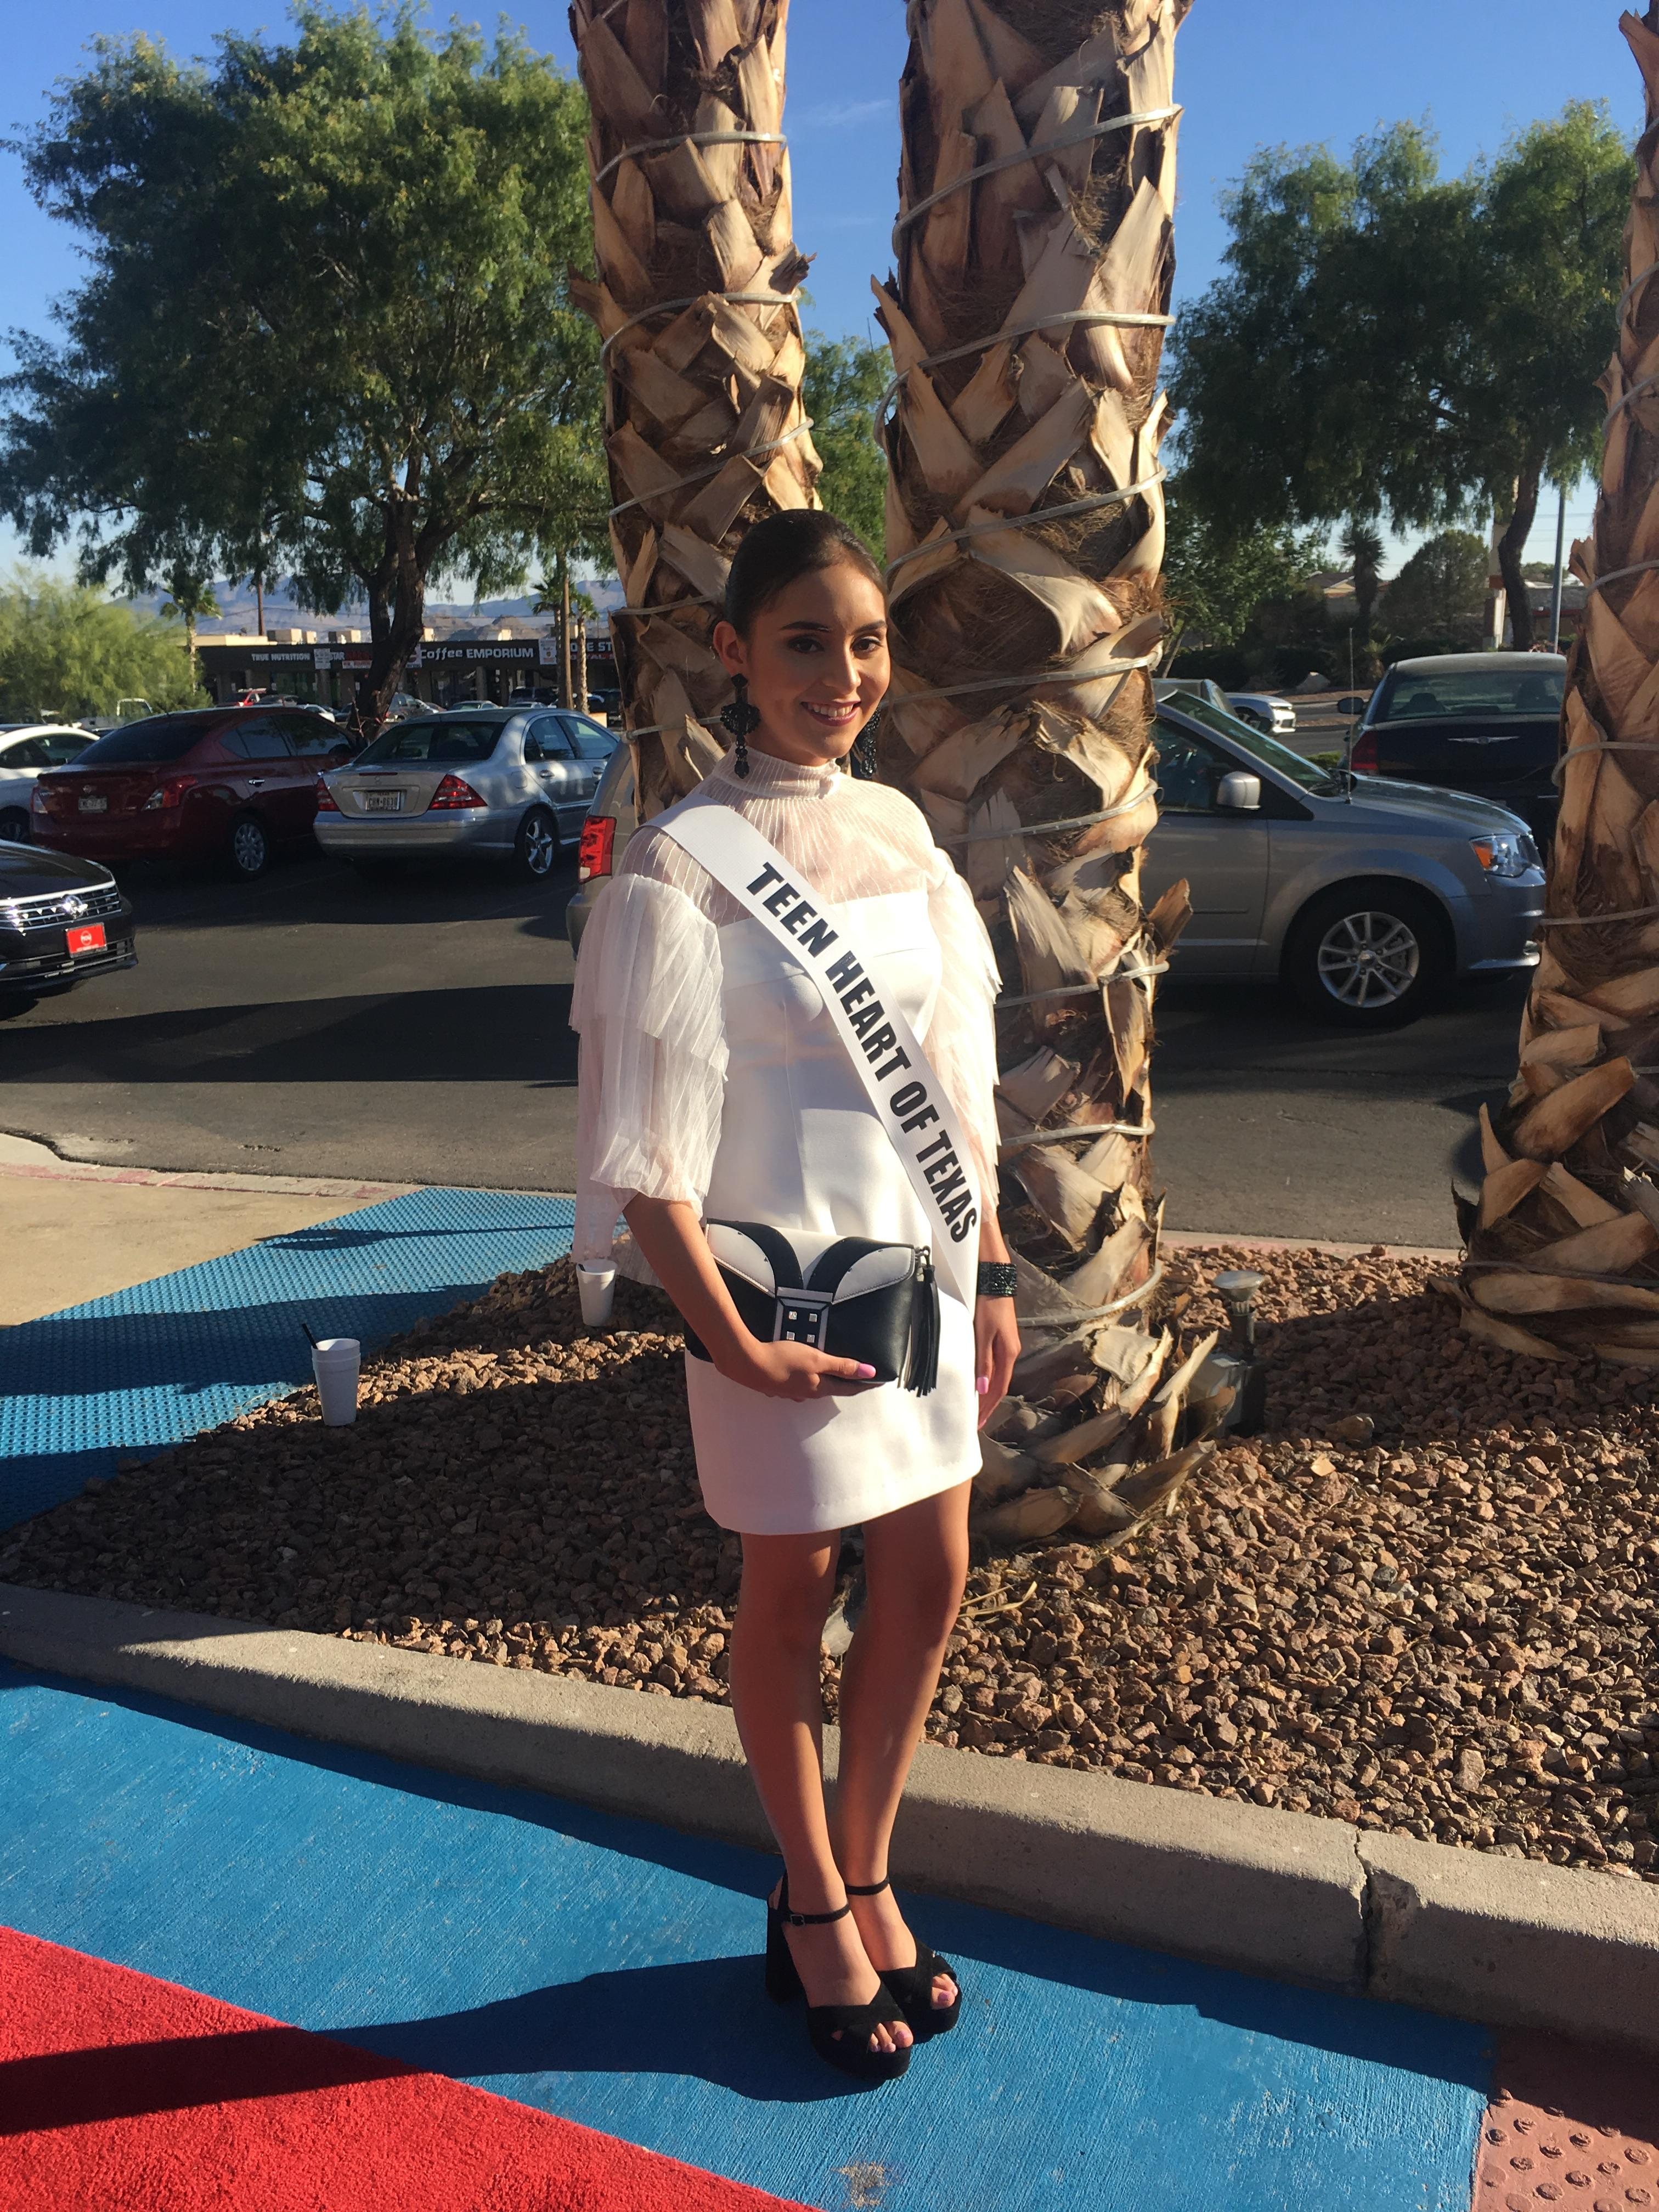 Teen Heart of Texas arrives to Capital Grille in west El Paso.